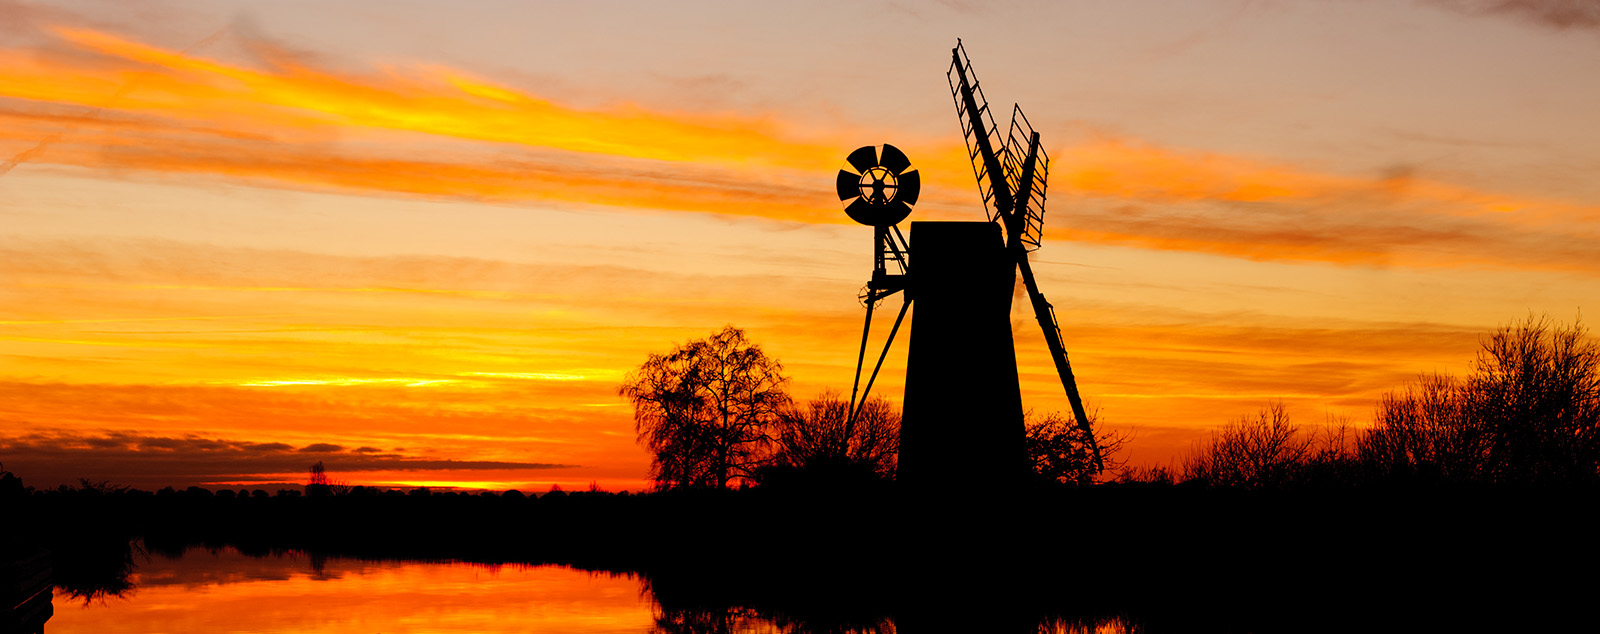 Sunset silhouette at How Hill, Ludham in Norfolk England. A traditional